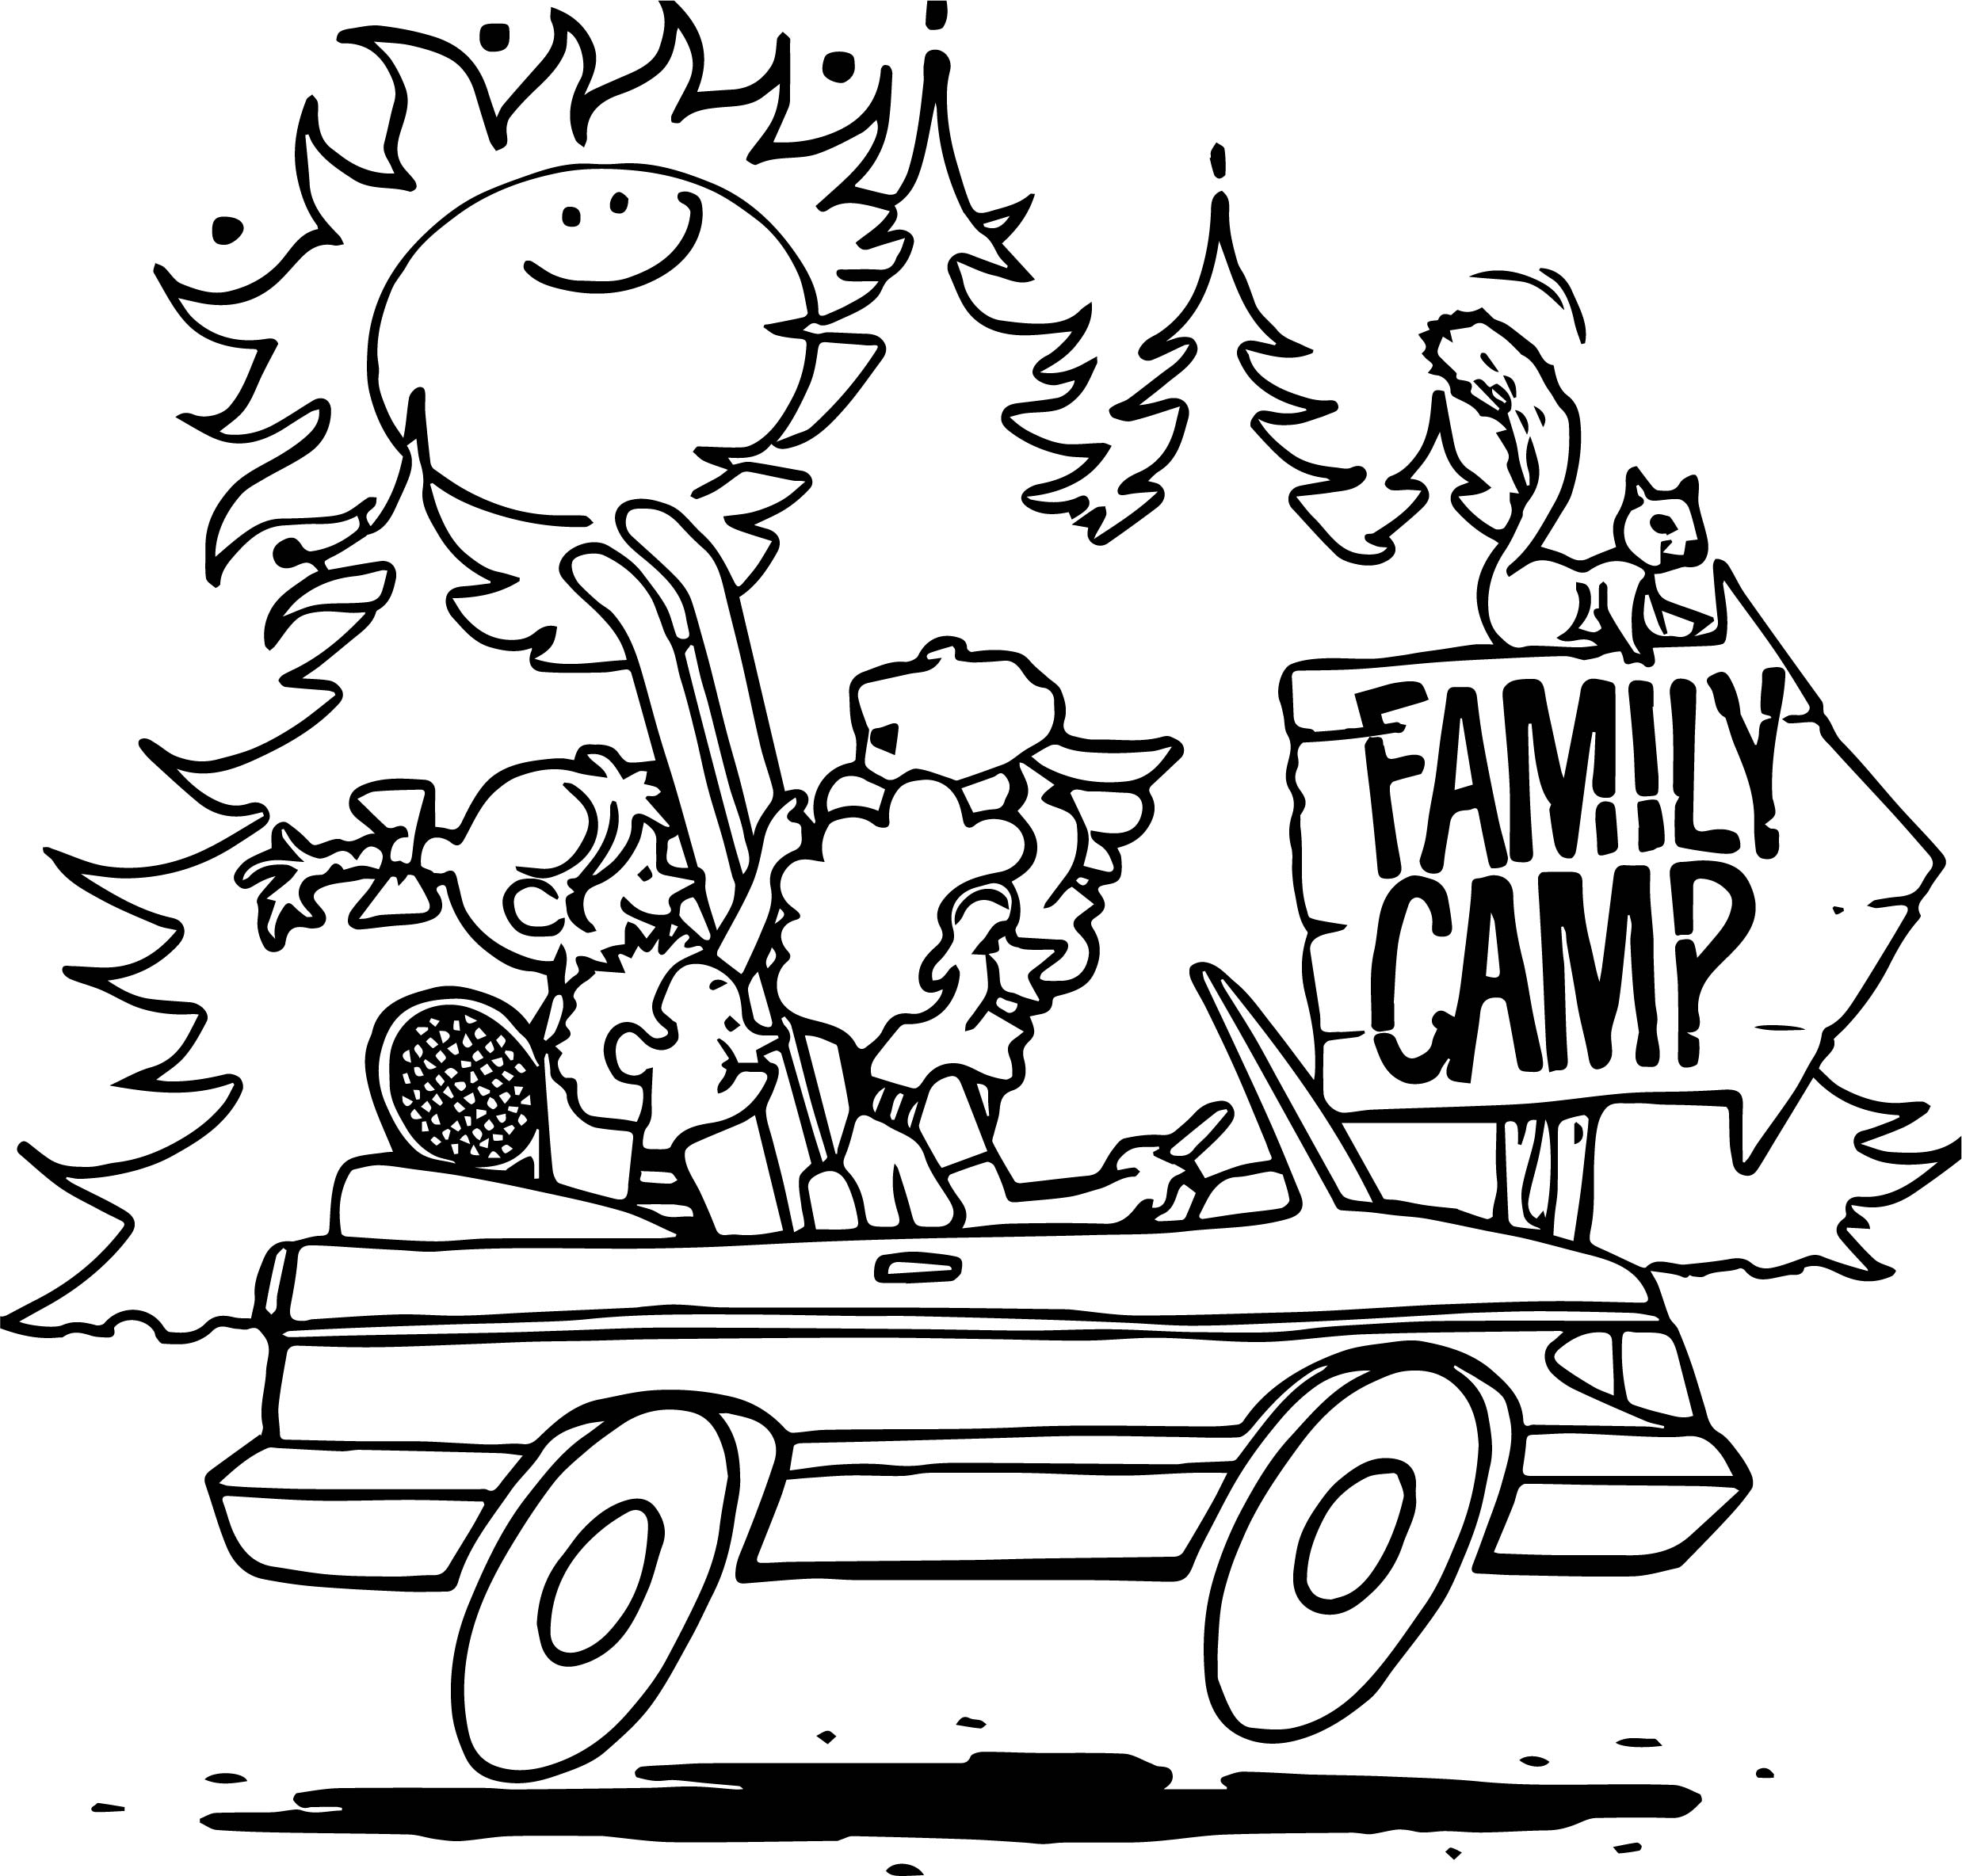 Family Camp Coloring Page